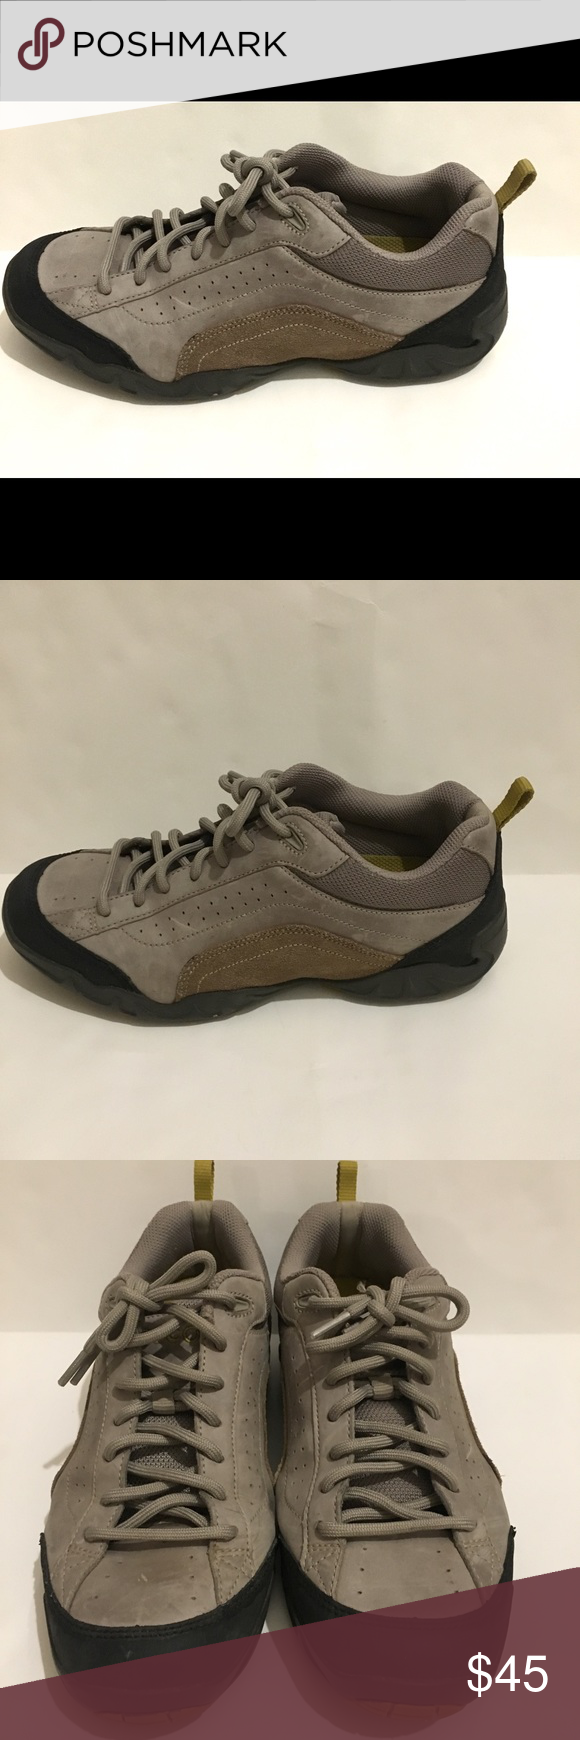 ec7c7d6fd61b Ecco Receptor Technology Women s Size 7-7.5 Ecco Receptor Technology Women s  Size 7-7.5 Leather suede Made In China Good pre-owned condition-no tears  Thank ...